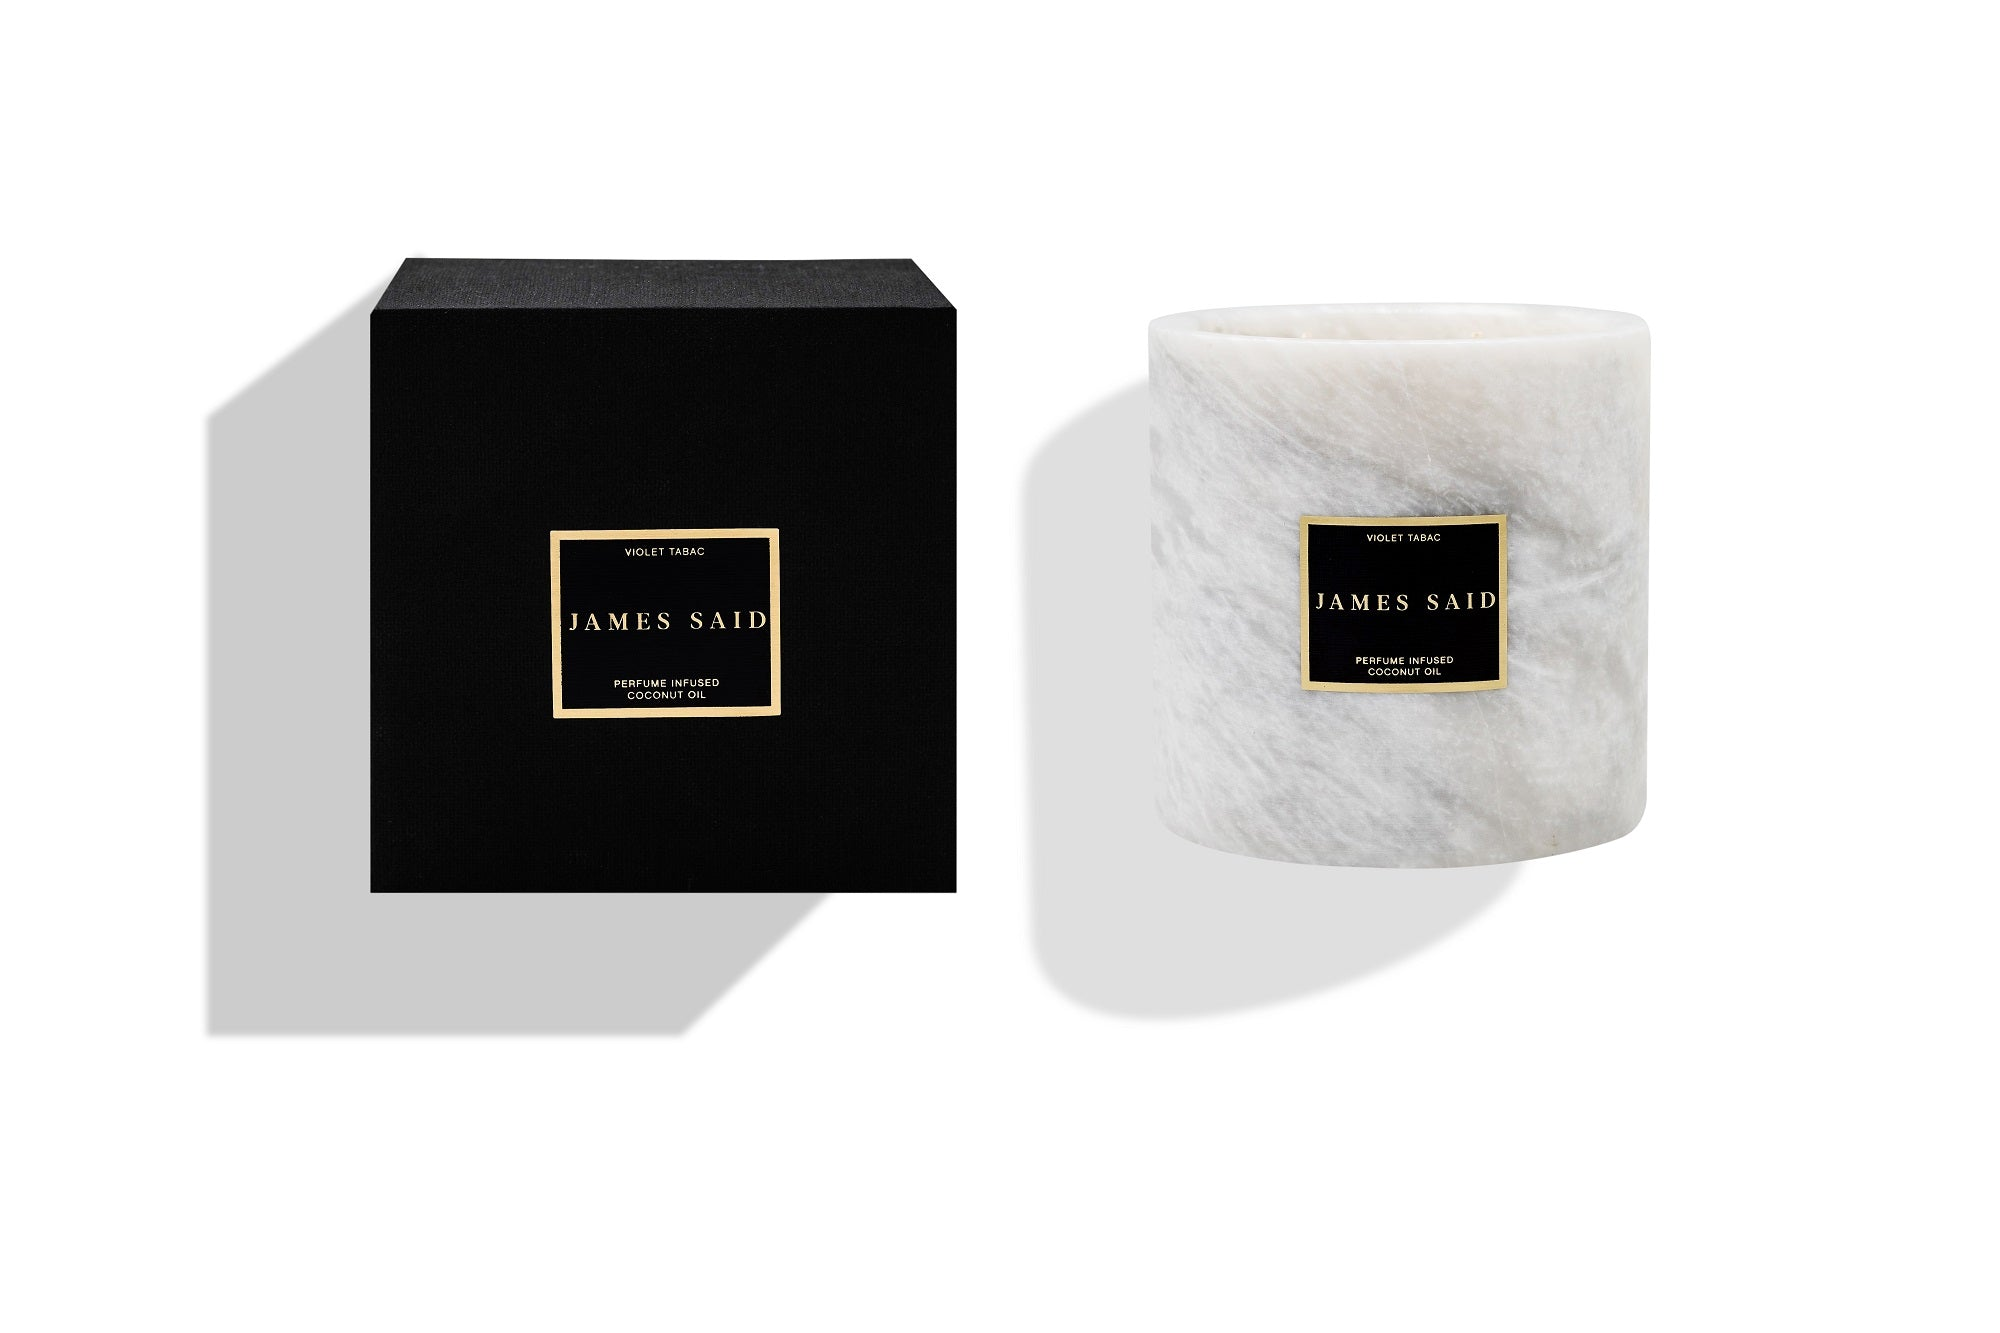 James Said Violet Tabac Onyx Smoked Candle - 1250g